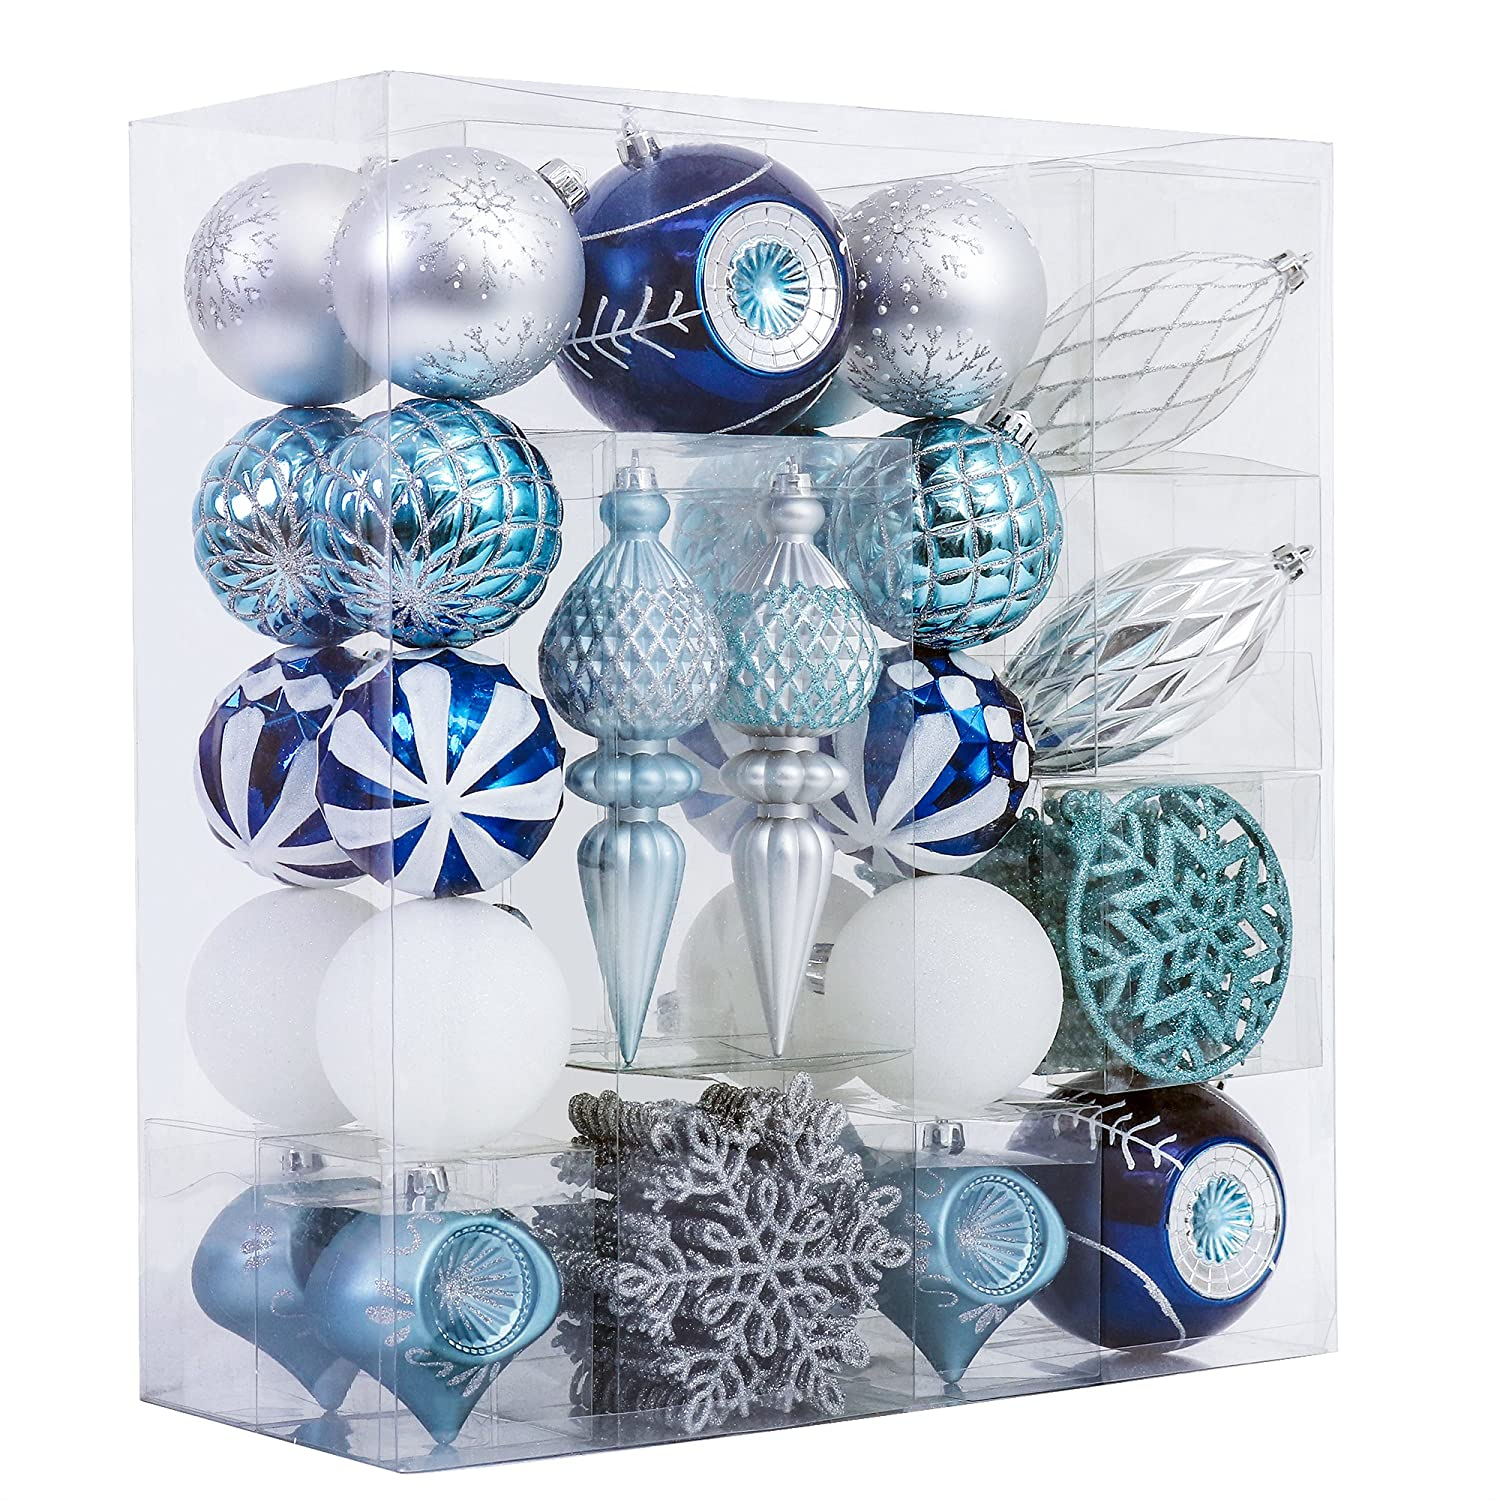 V&M VALERY MADELYN 50ct Shatterproof Christmas Balls Ornaments Regal Peacock, 1.97inch-6.89inch /5CM-17.5CM, Metal Hooks Included,Themed with Tree Skirt(Not Included) PE10-S/50-38.08.28.16.41